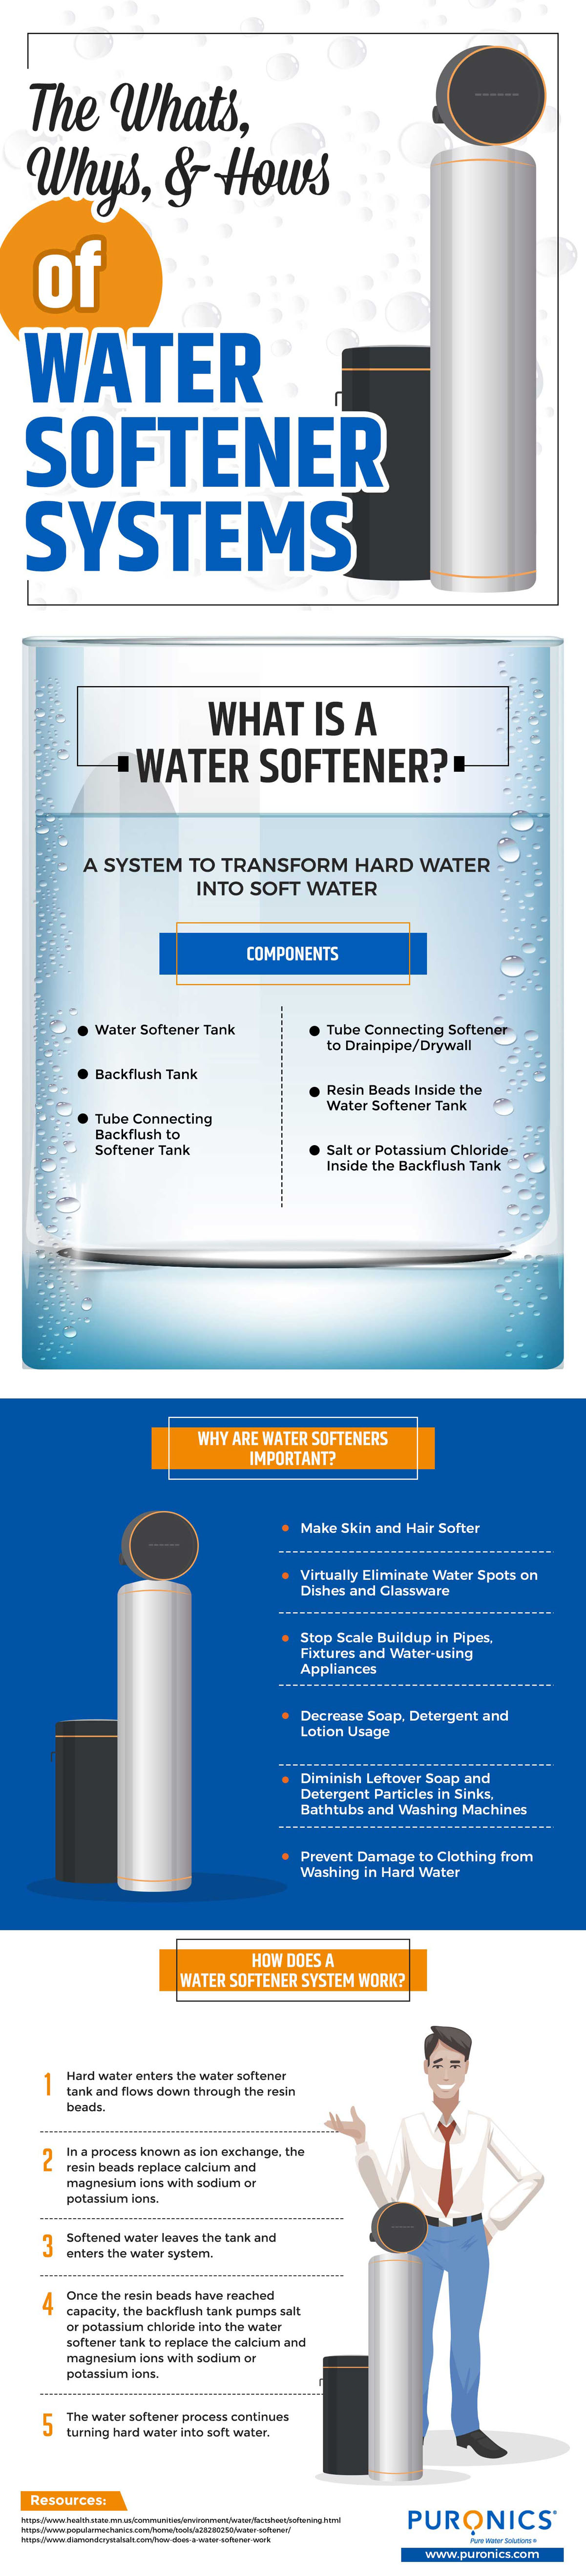 The Whats, Whys, & Hows of Water Softener Systems